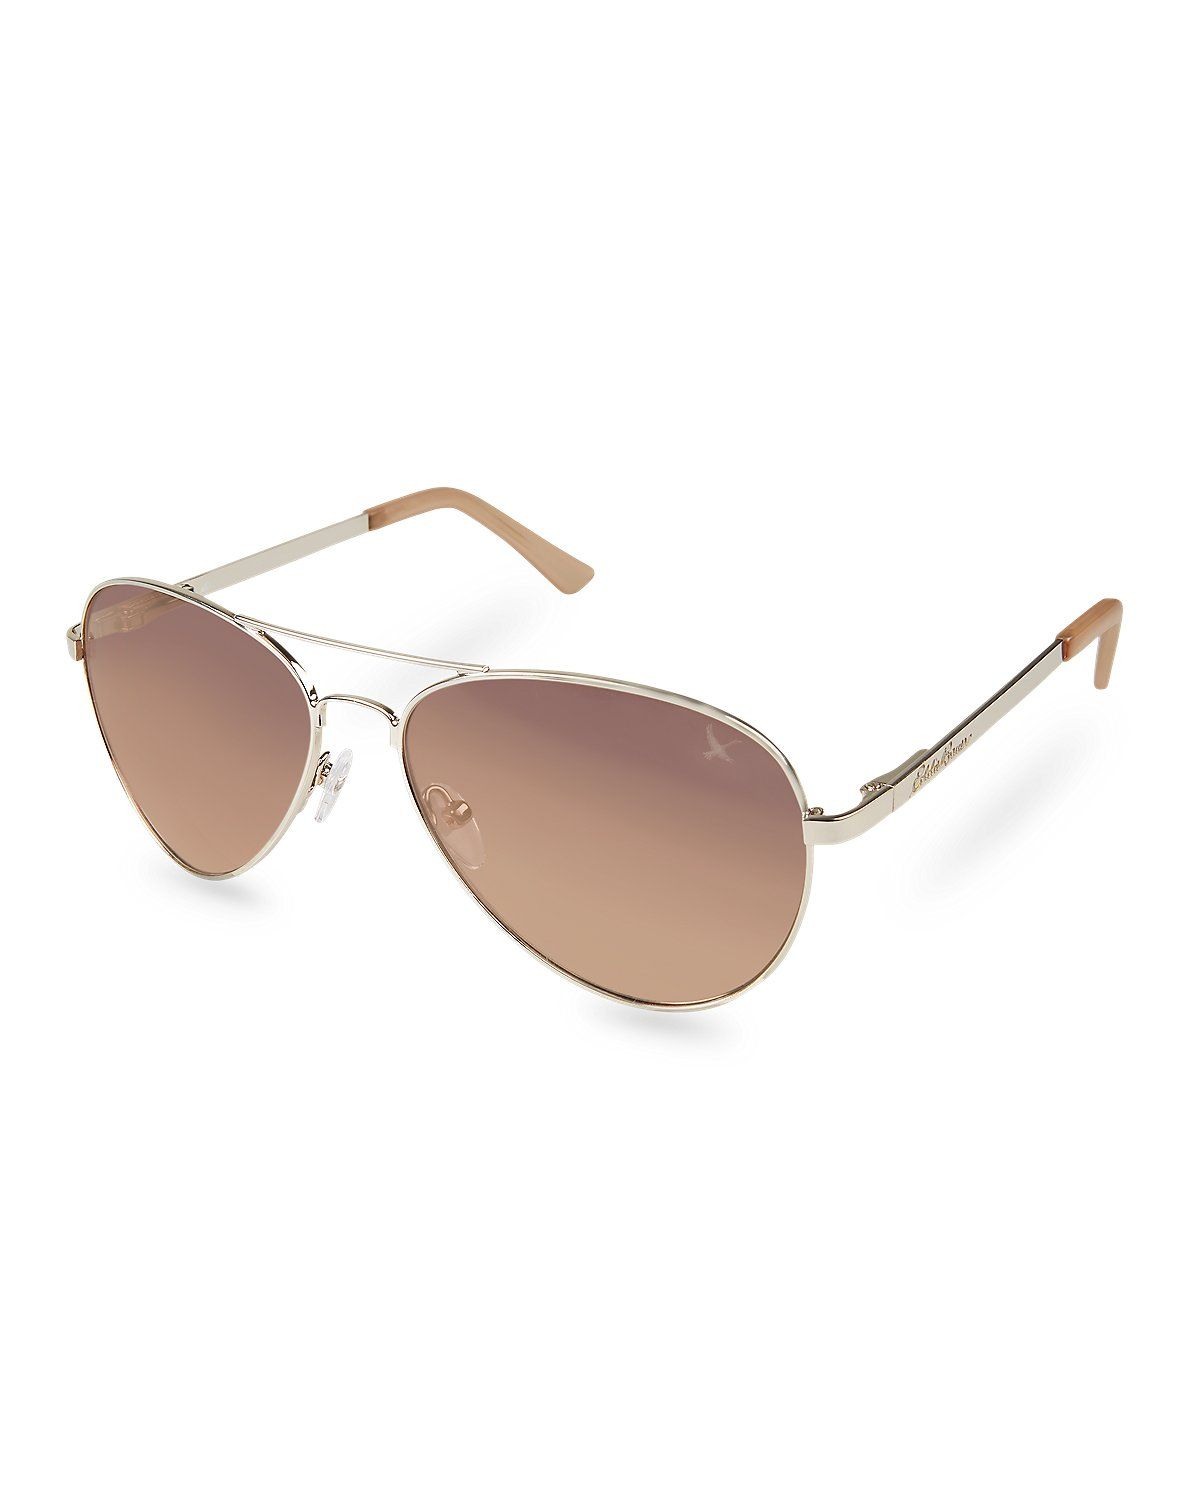 9fb5a633443 Ravenna Sunglasses